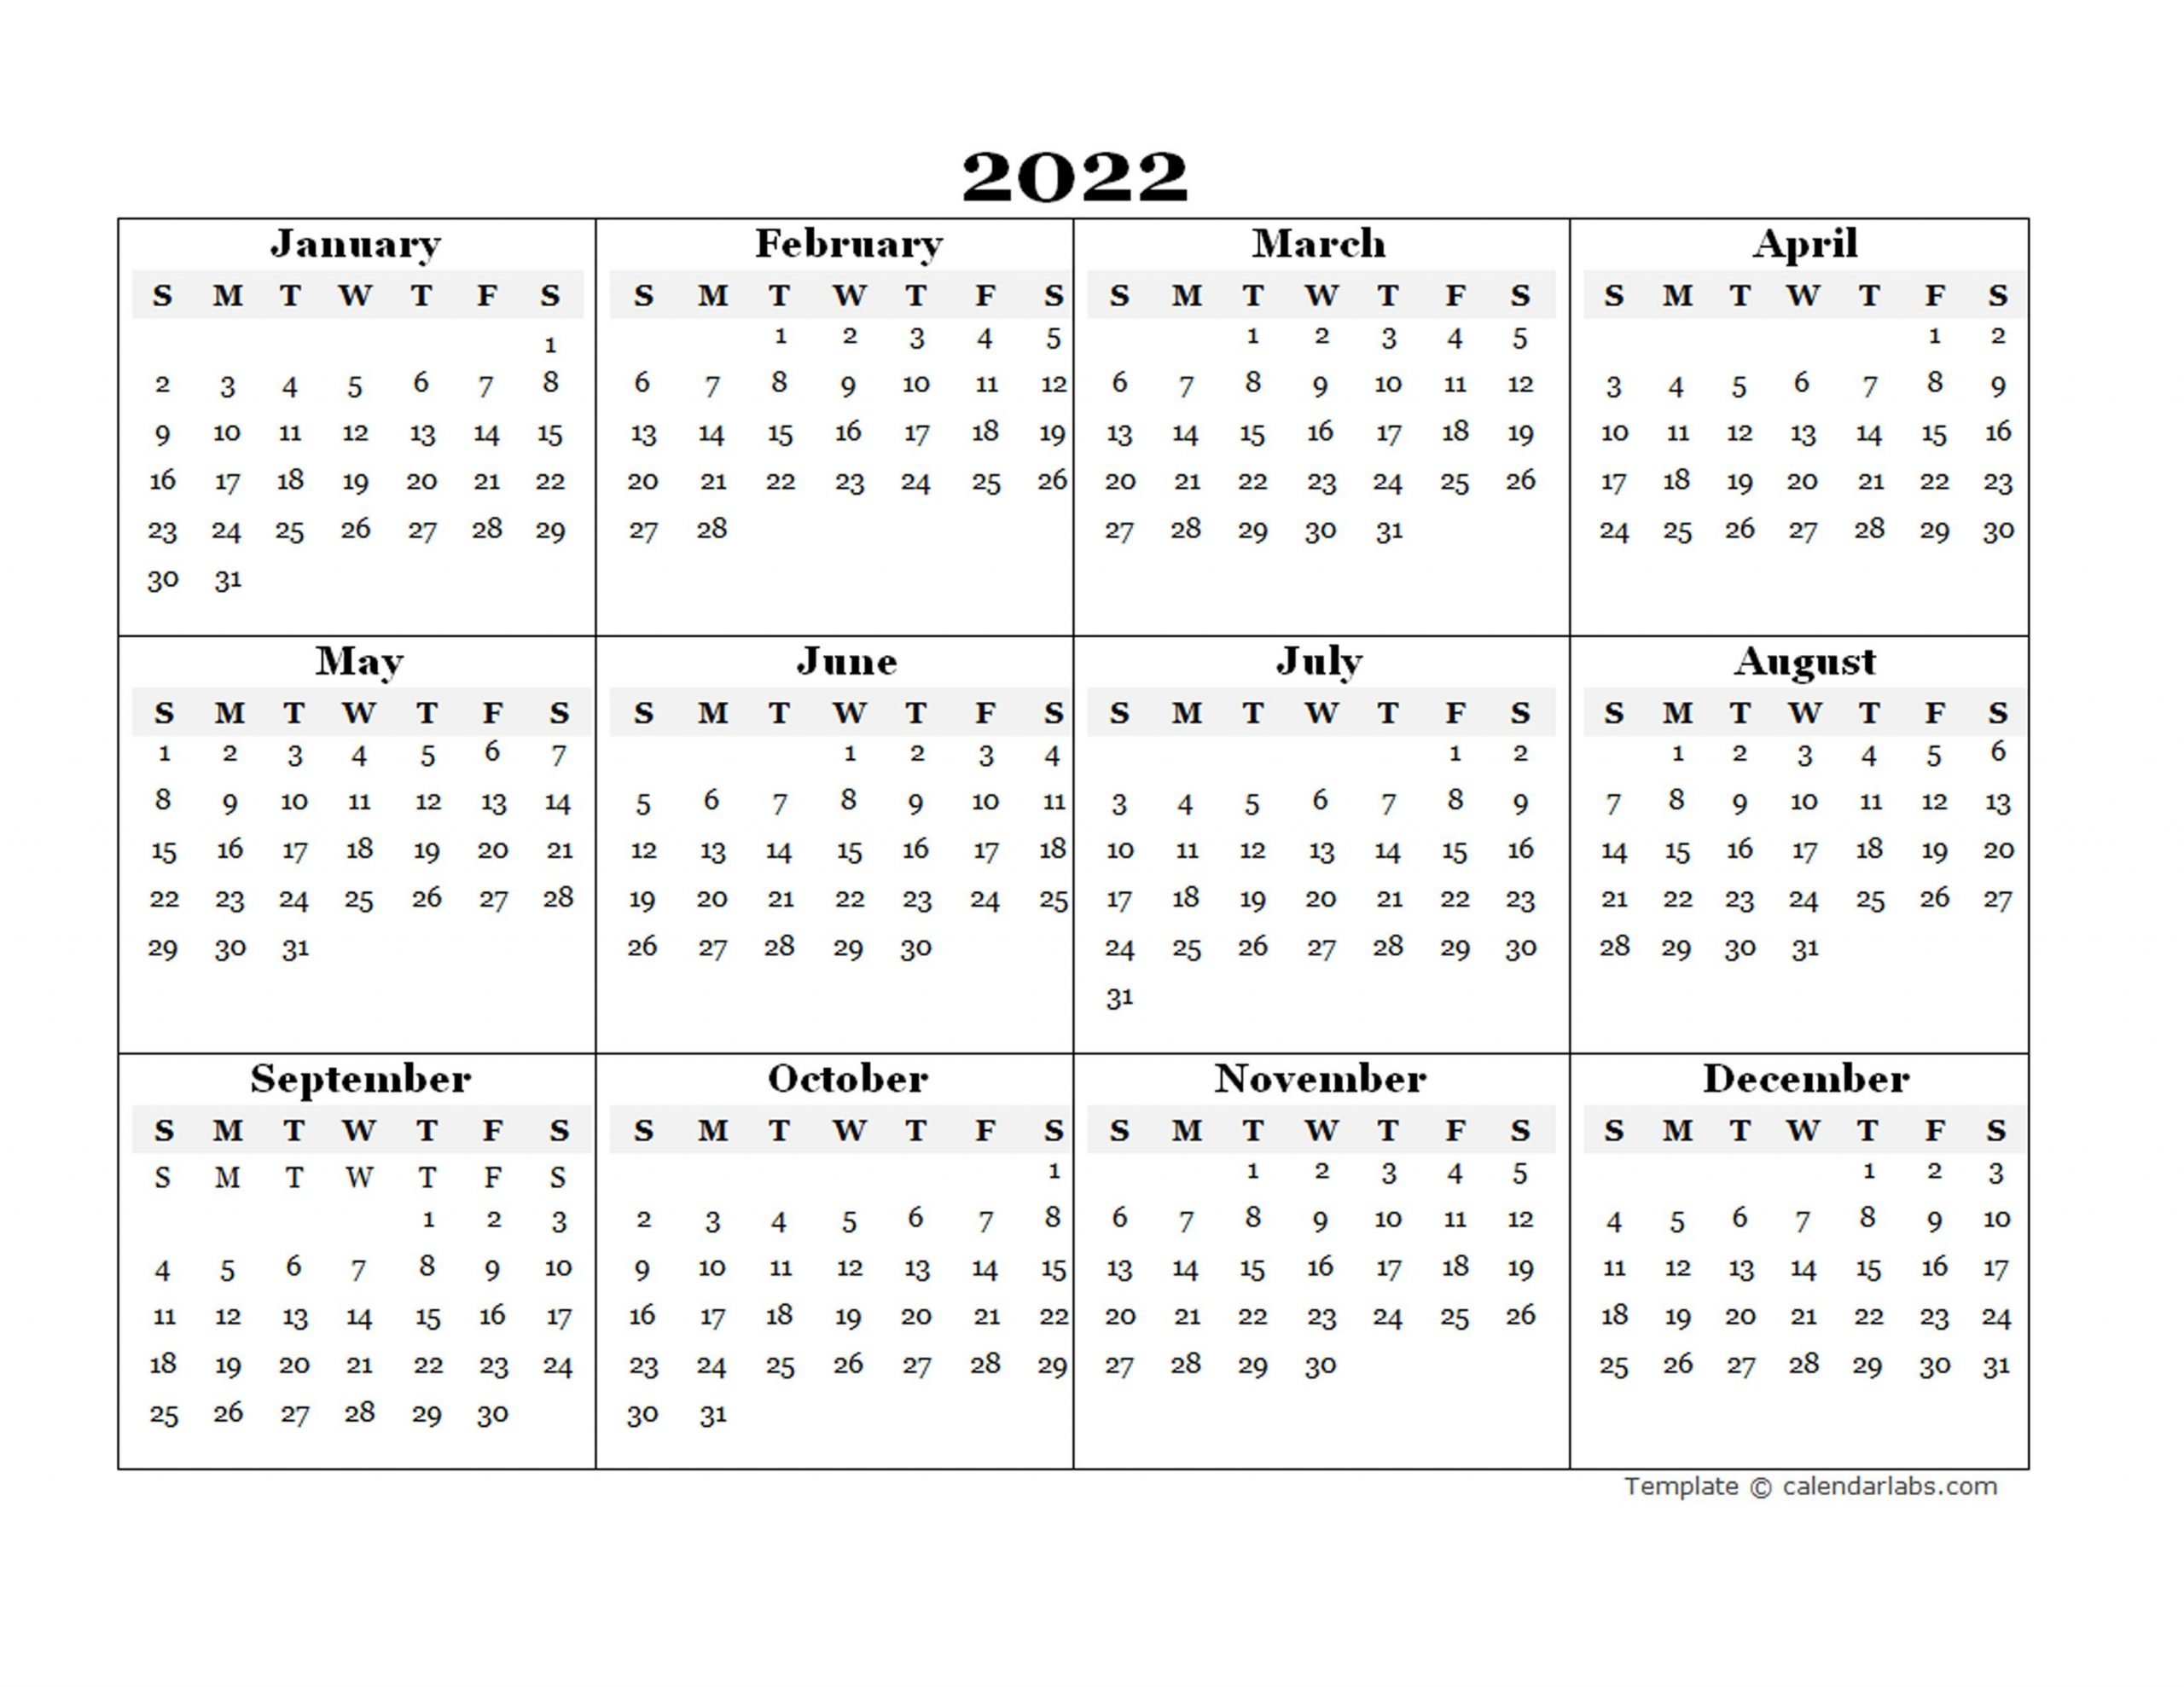 2022 Blank Yearly Calendar Template - Free Printable Templates